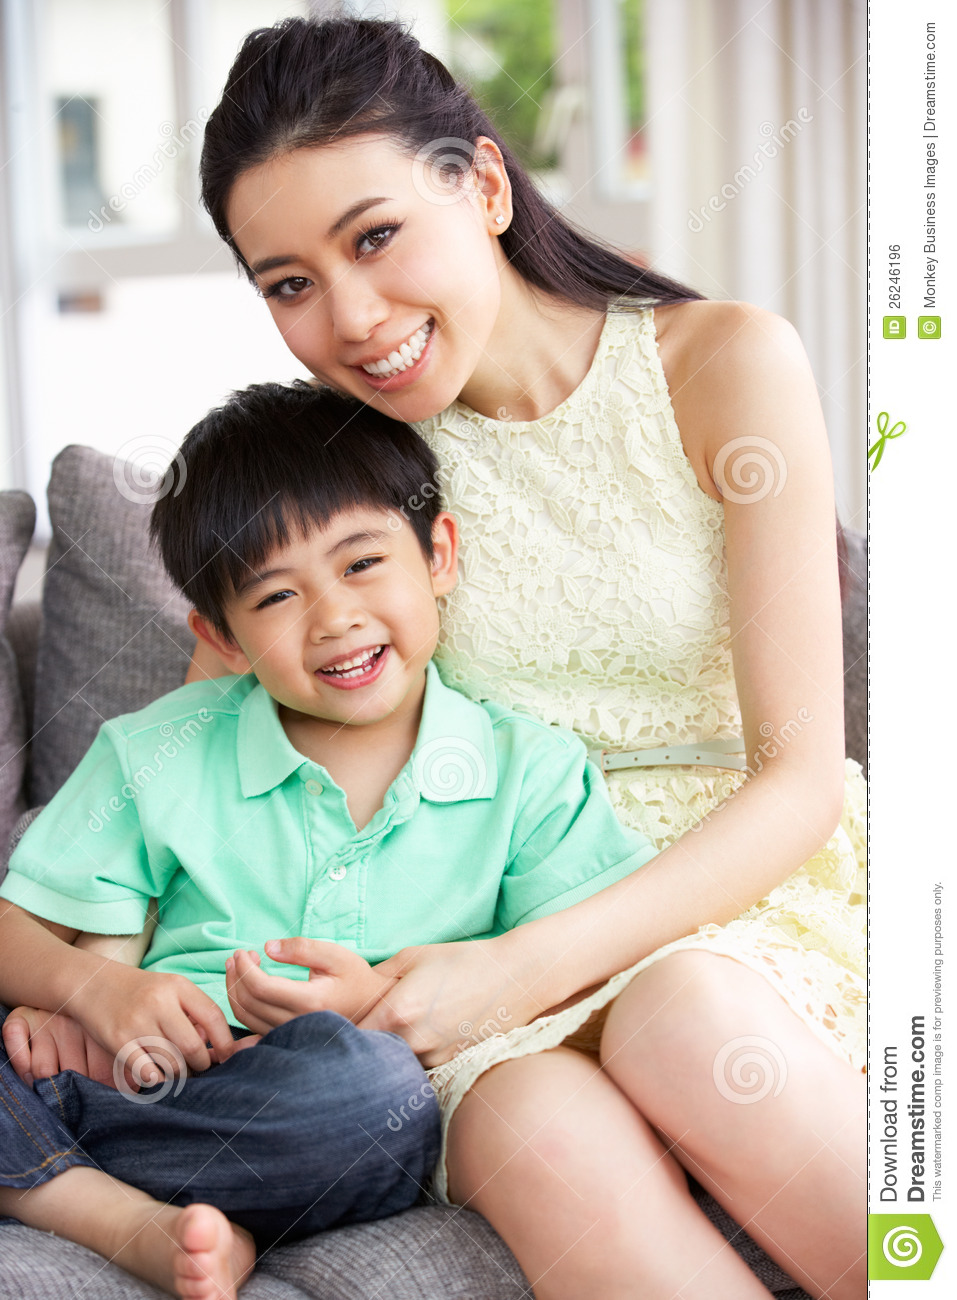 chinese mother and son at home together stock photo image of home portrait 26246196. Black Bedroom Furniture Sets. Home Design Ideas